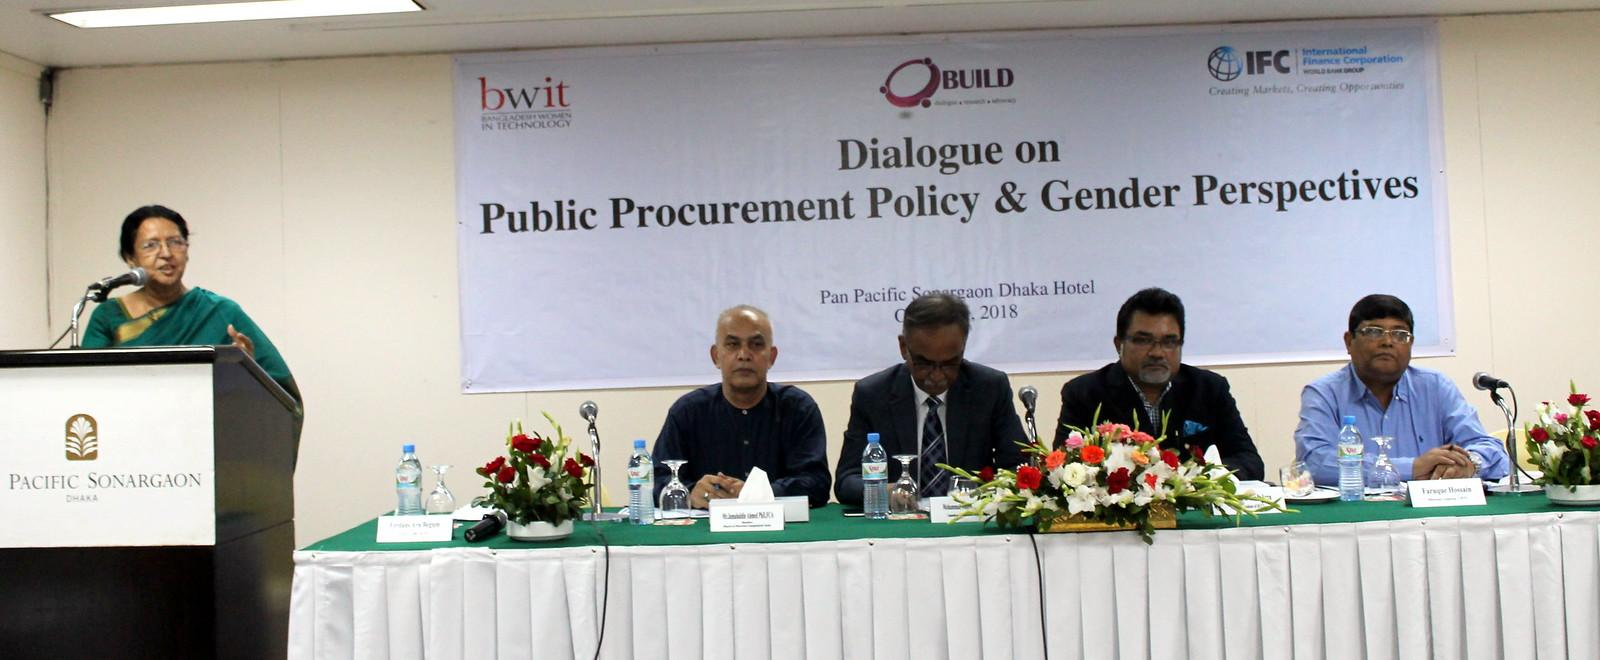 Public Procurement Policy and Gender Perspective Dialogue: BUILD and BWIT